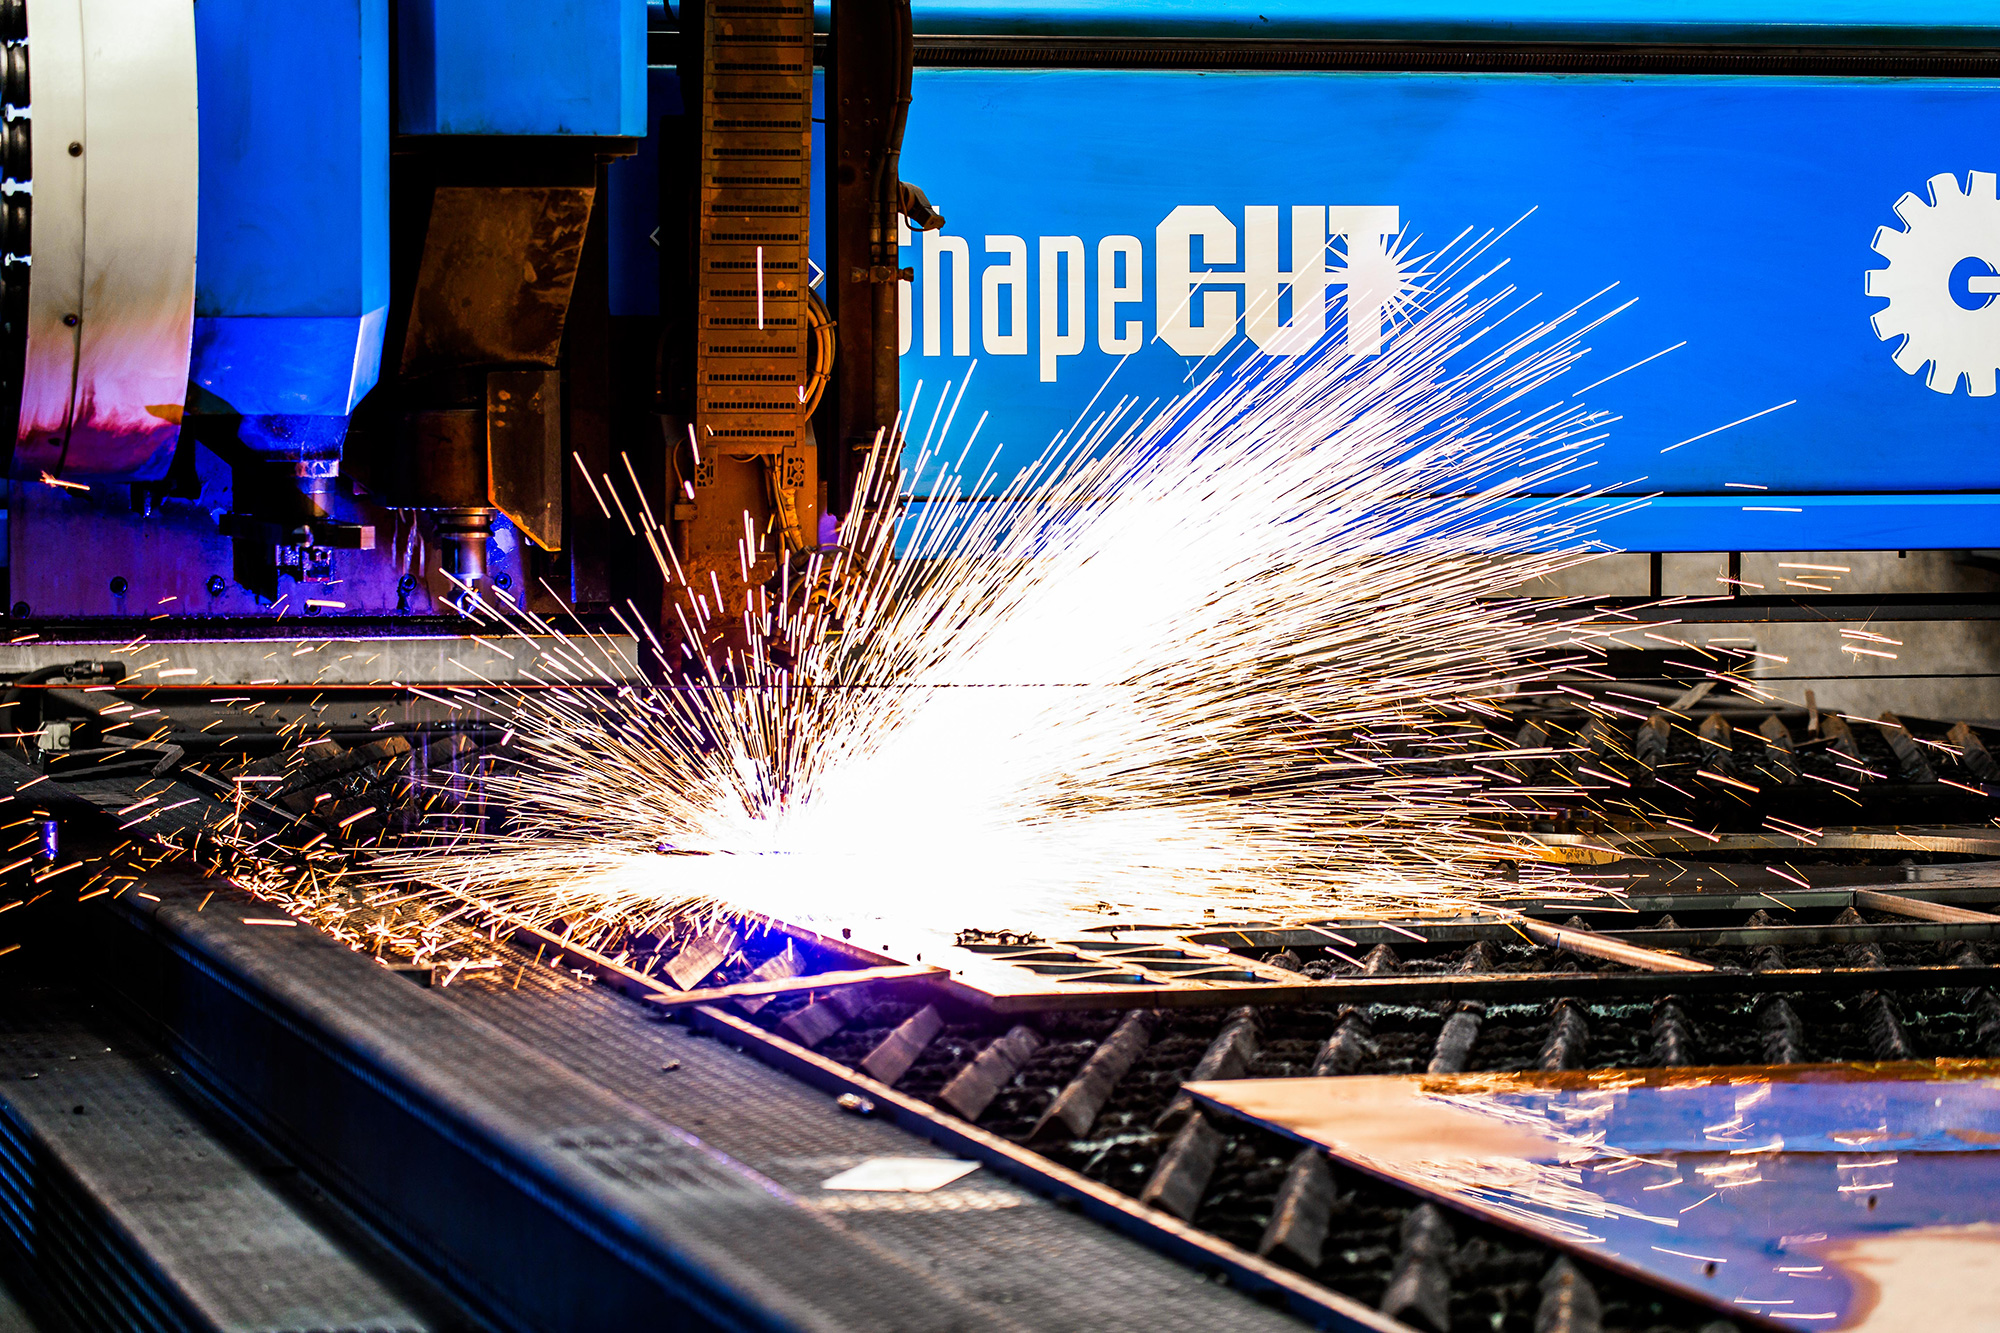 Saying hello to our new CNC plasma cutter